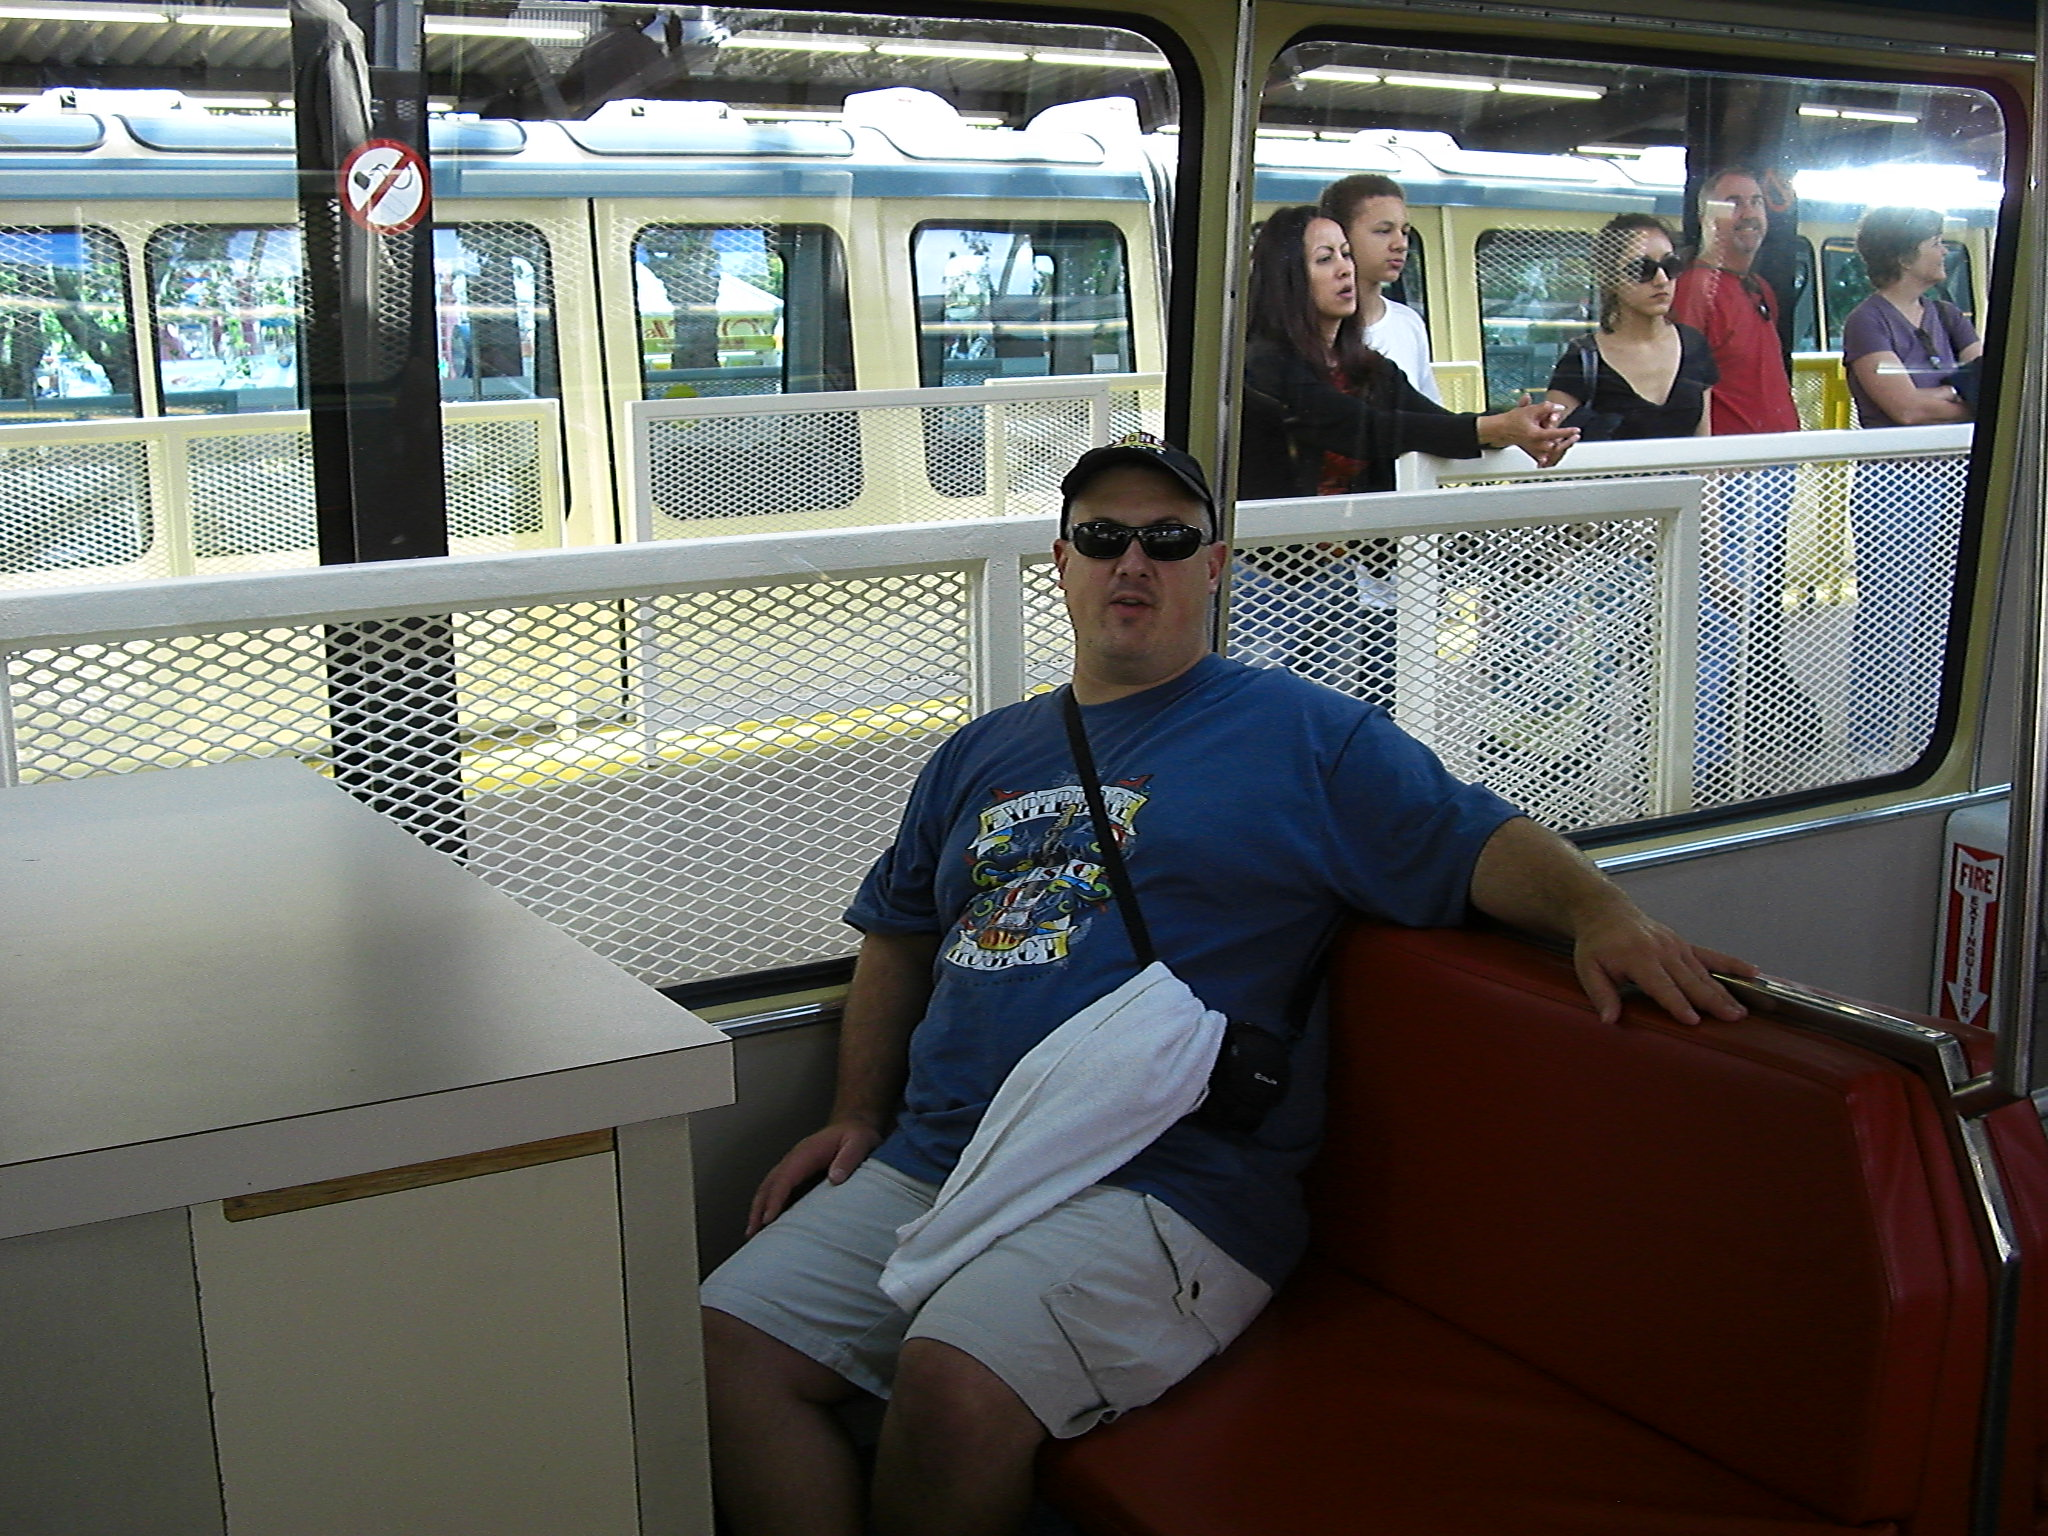 Iggy getting ready to leave the Seattle Monorail 2007